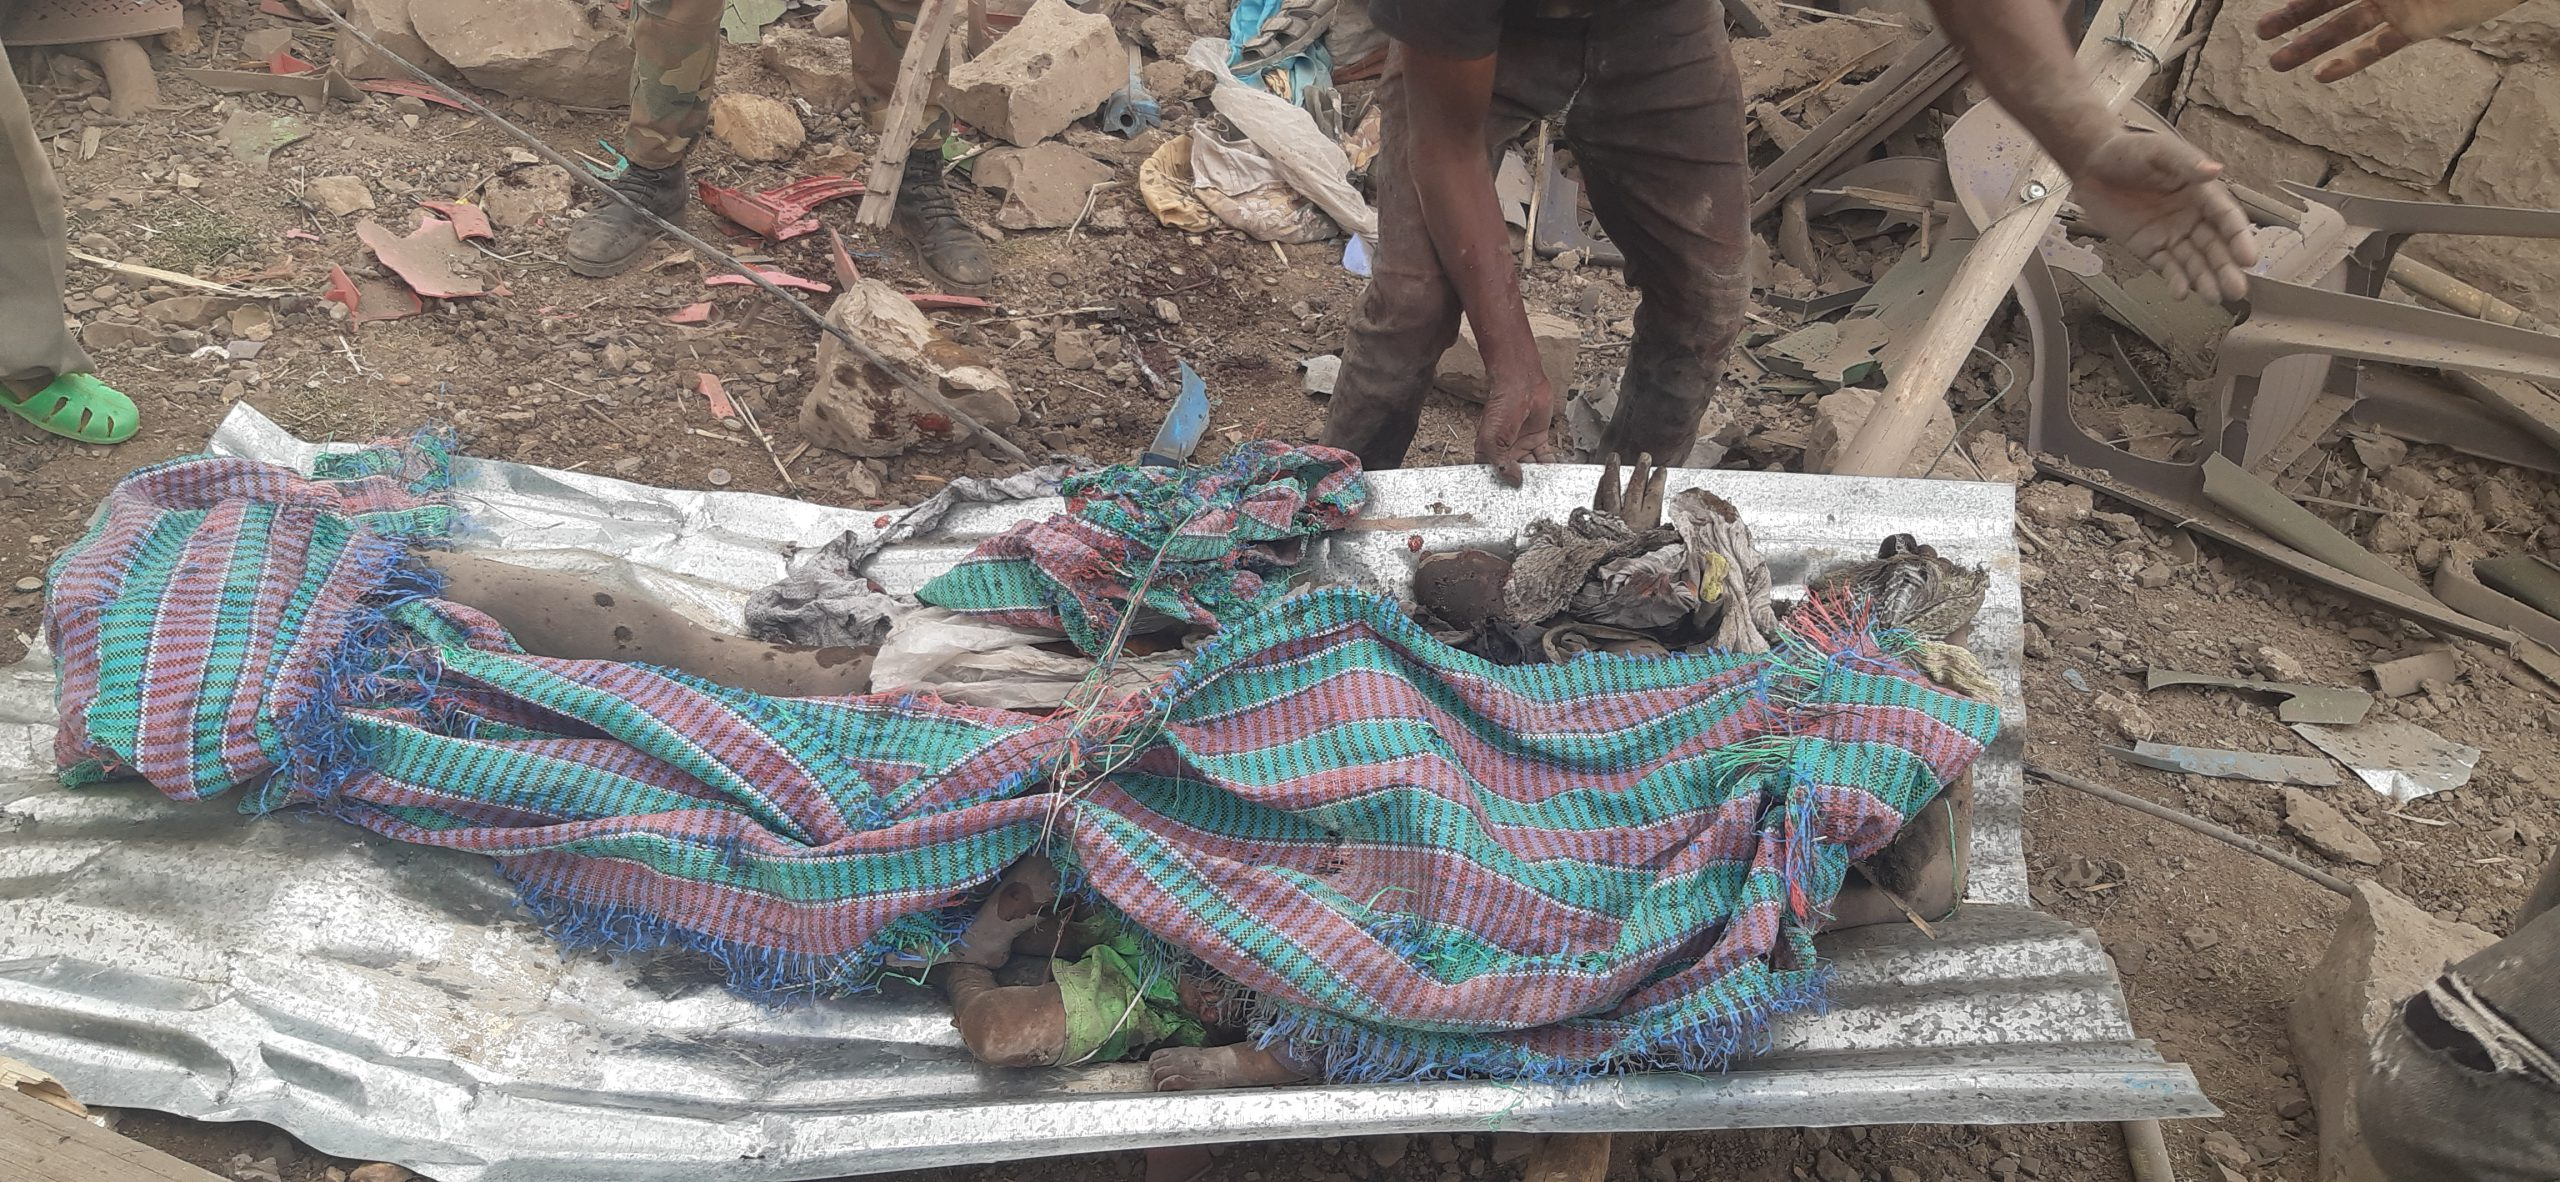 Healthcare workers recount Togoga after the airstrike (Photos and videos included)